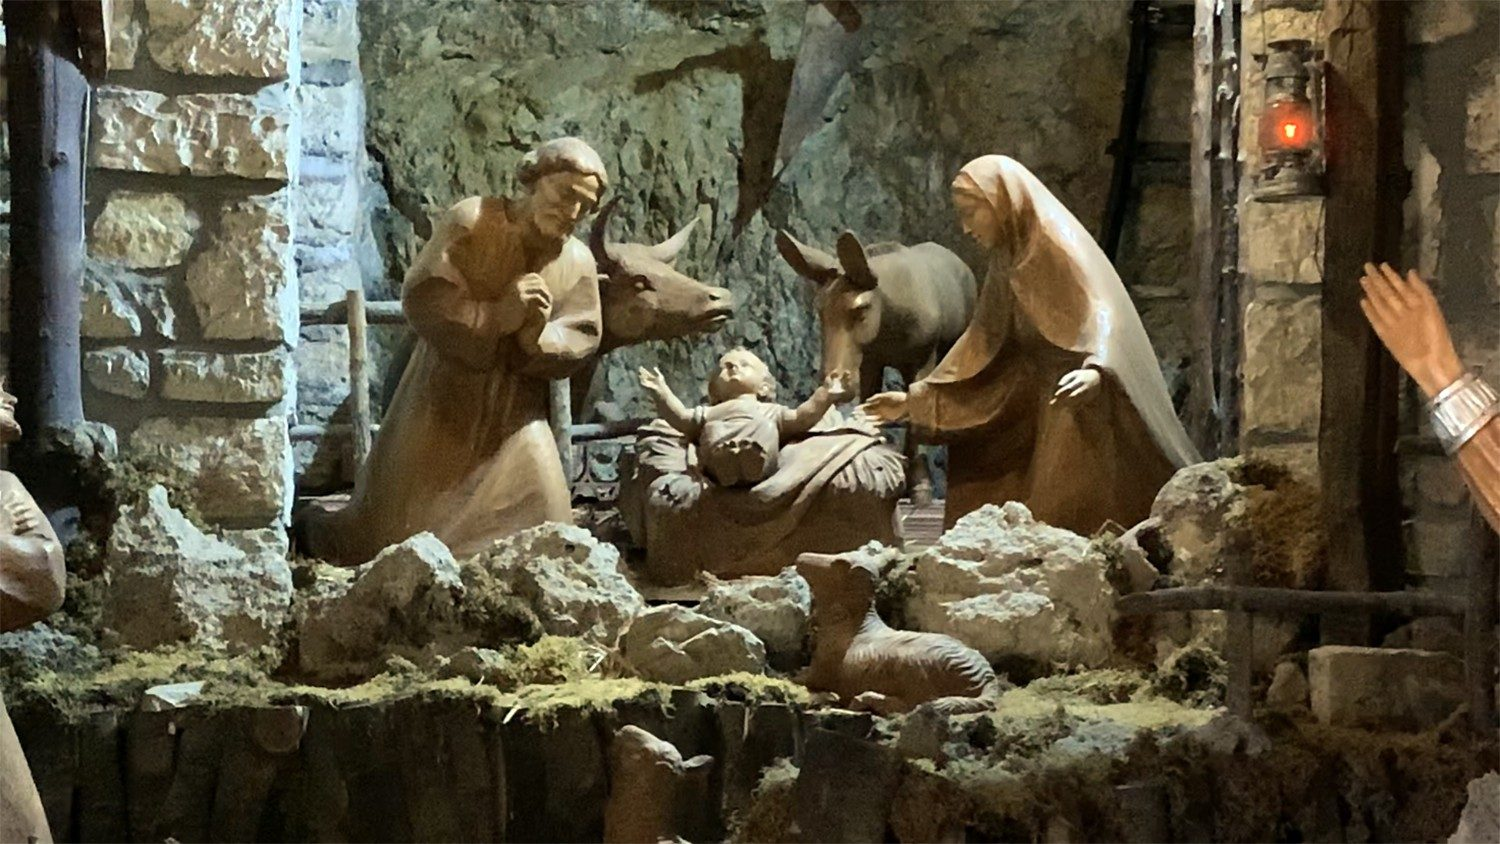 Pope writes Apostolic Letter on the significance of the Christmas crèche - Vatican News